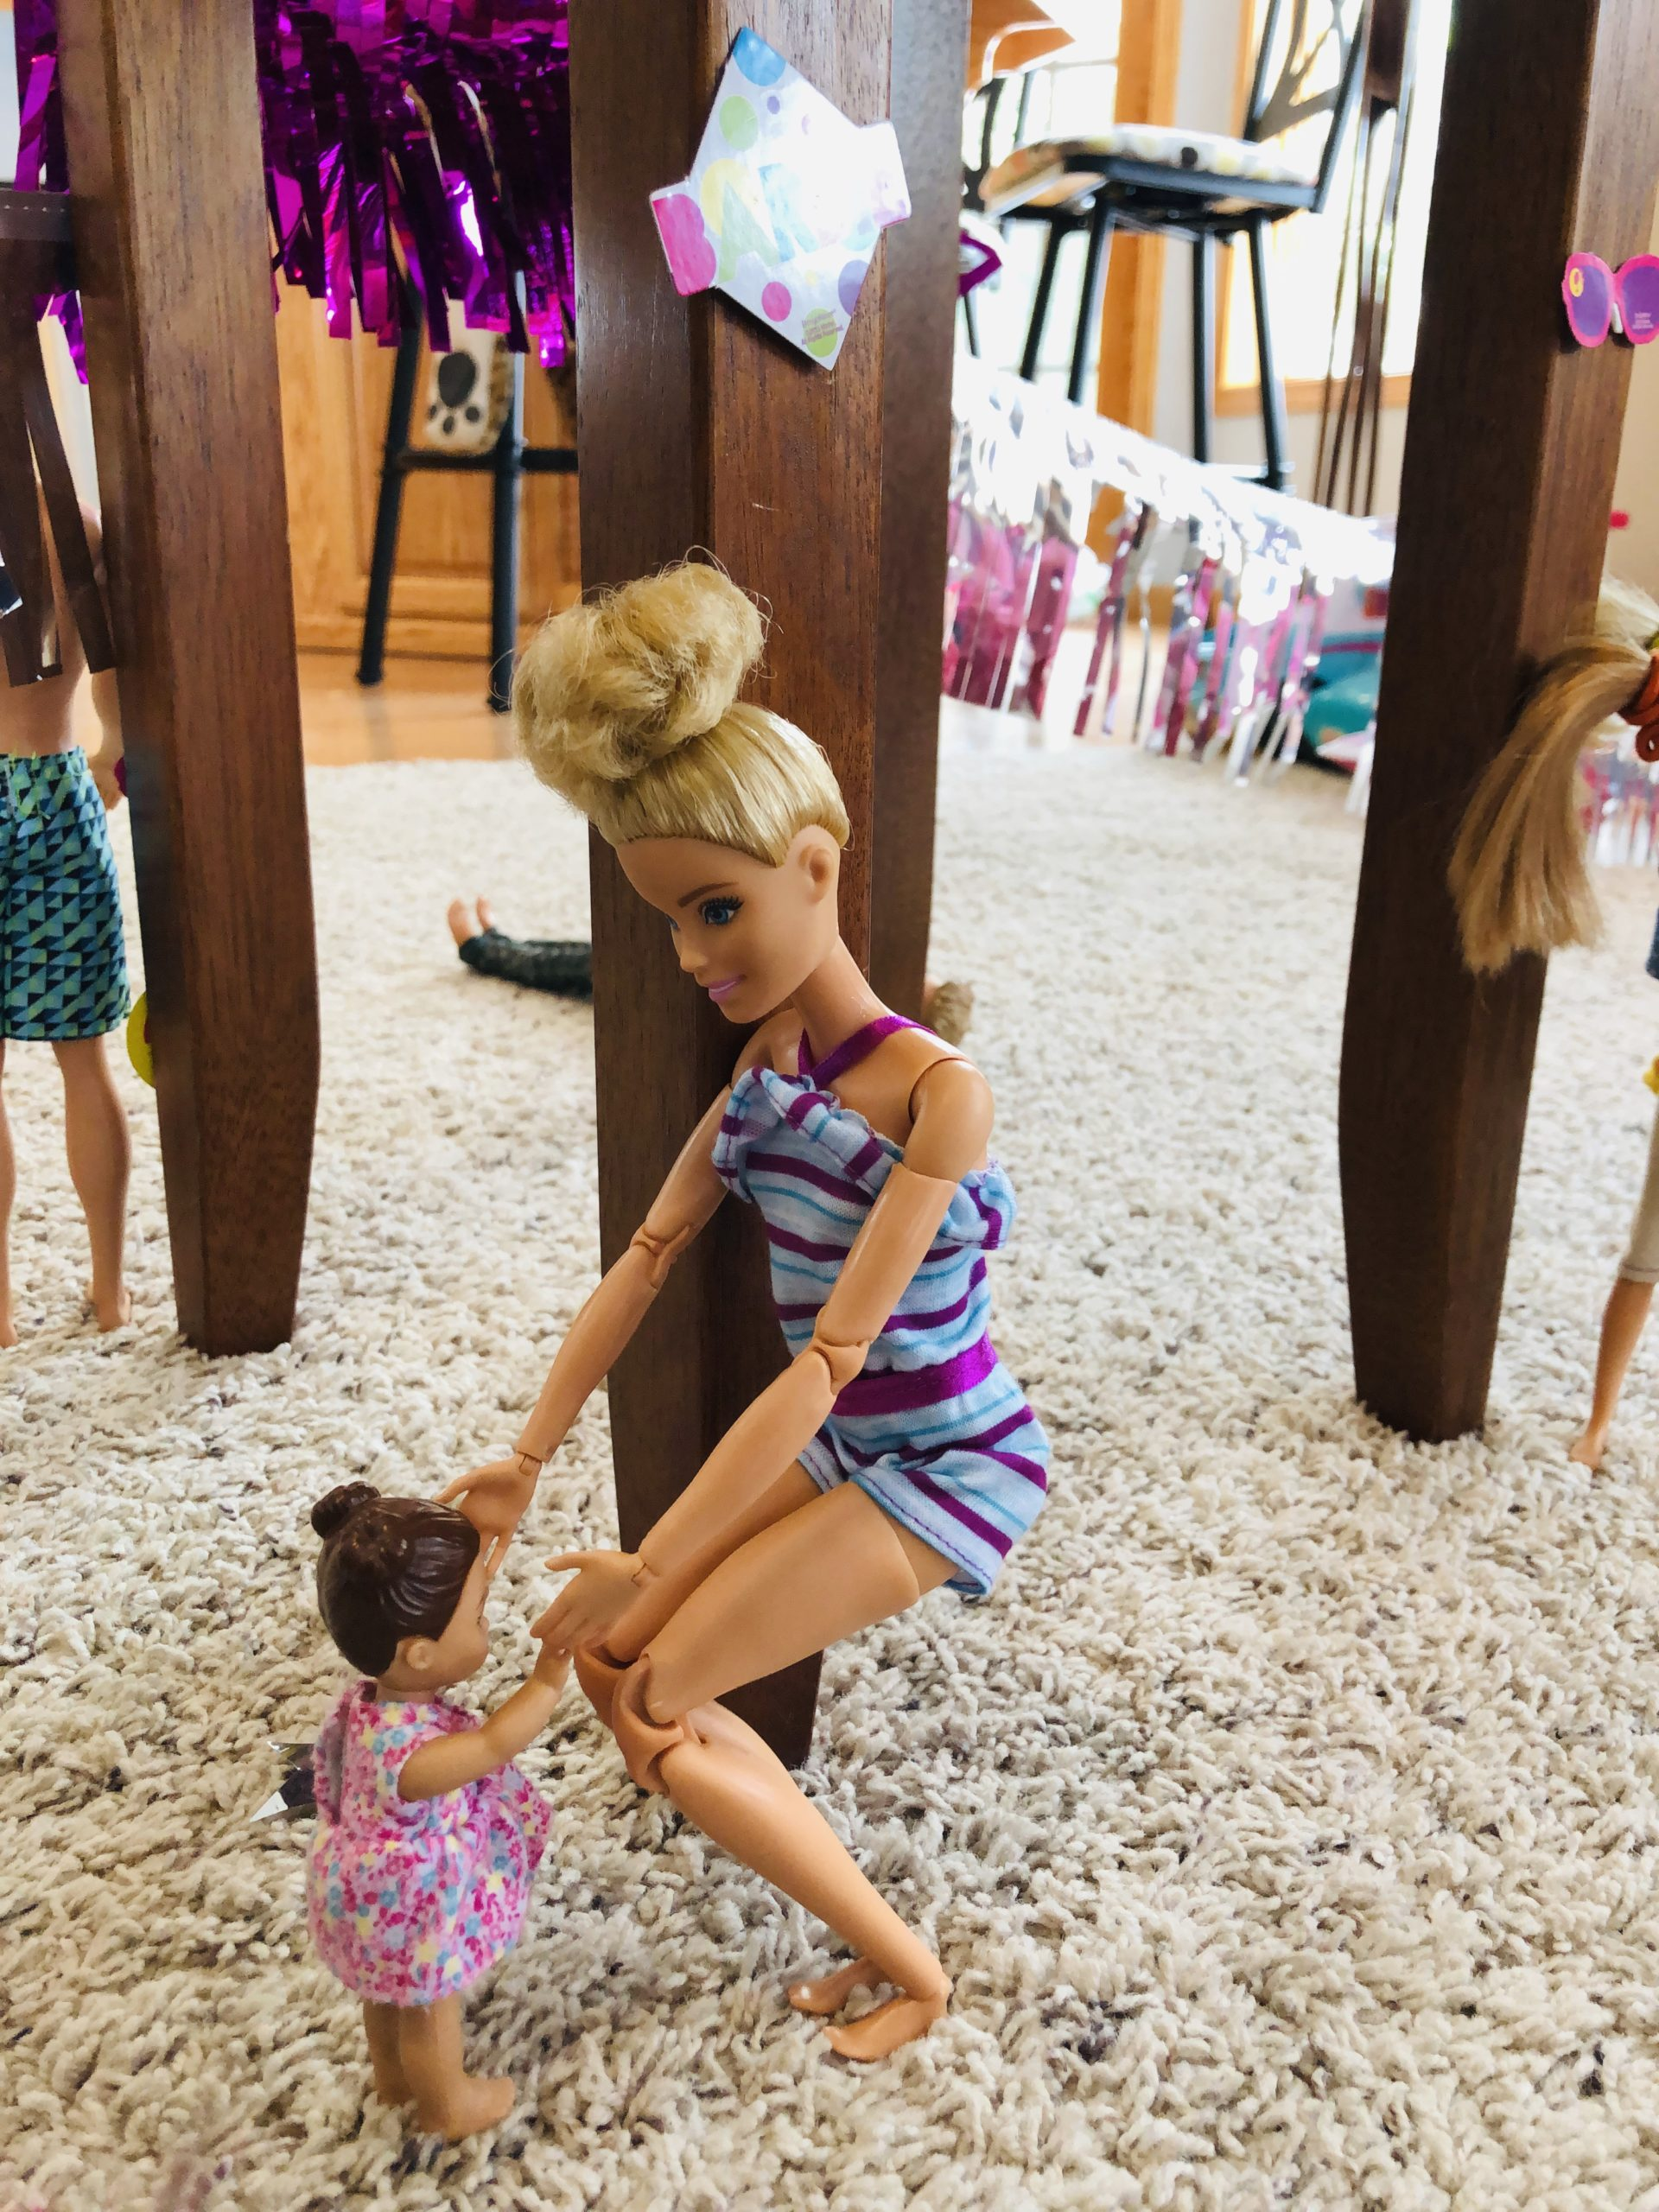 Barbie is holding hands and dancing with a smaller Barbie doll.